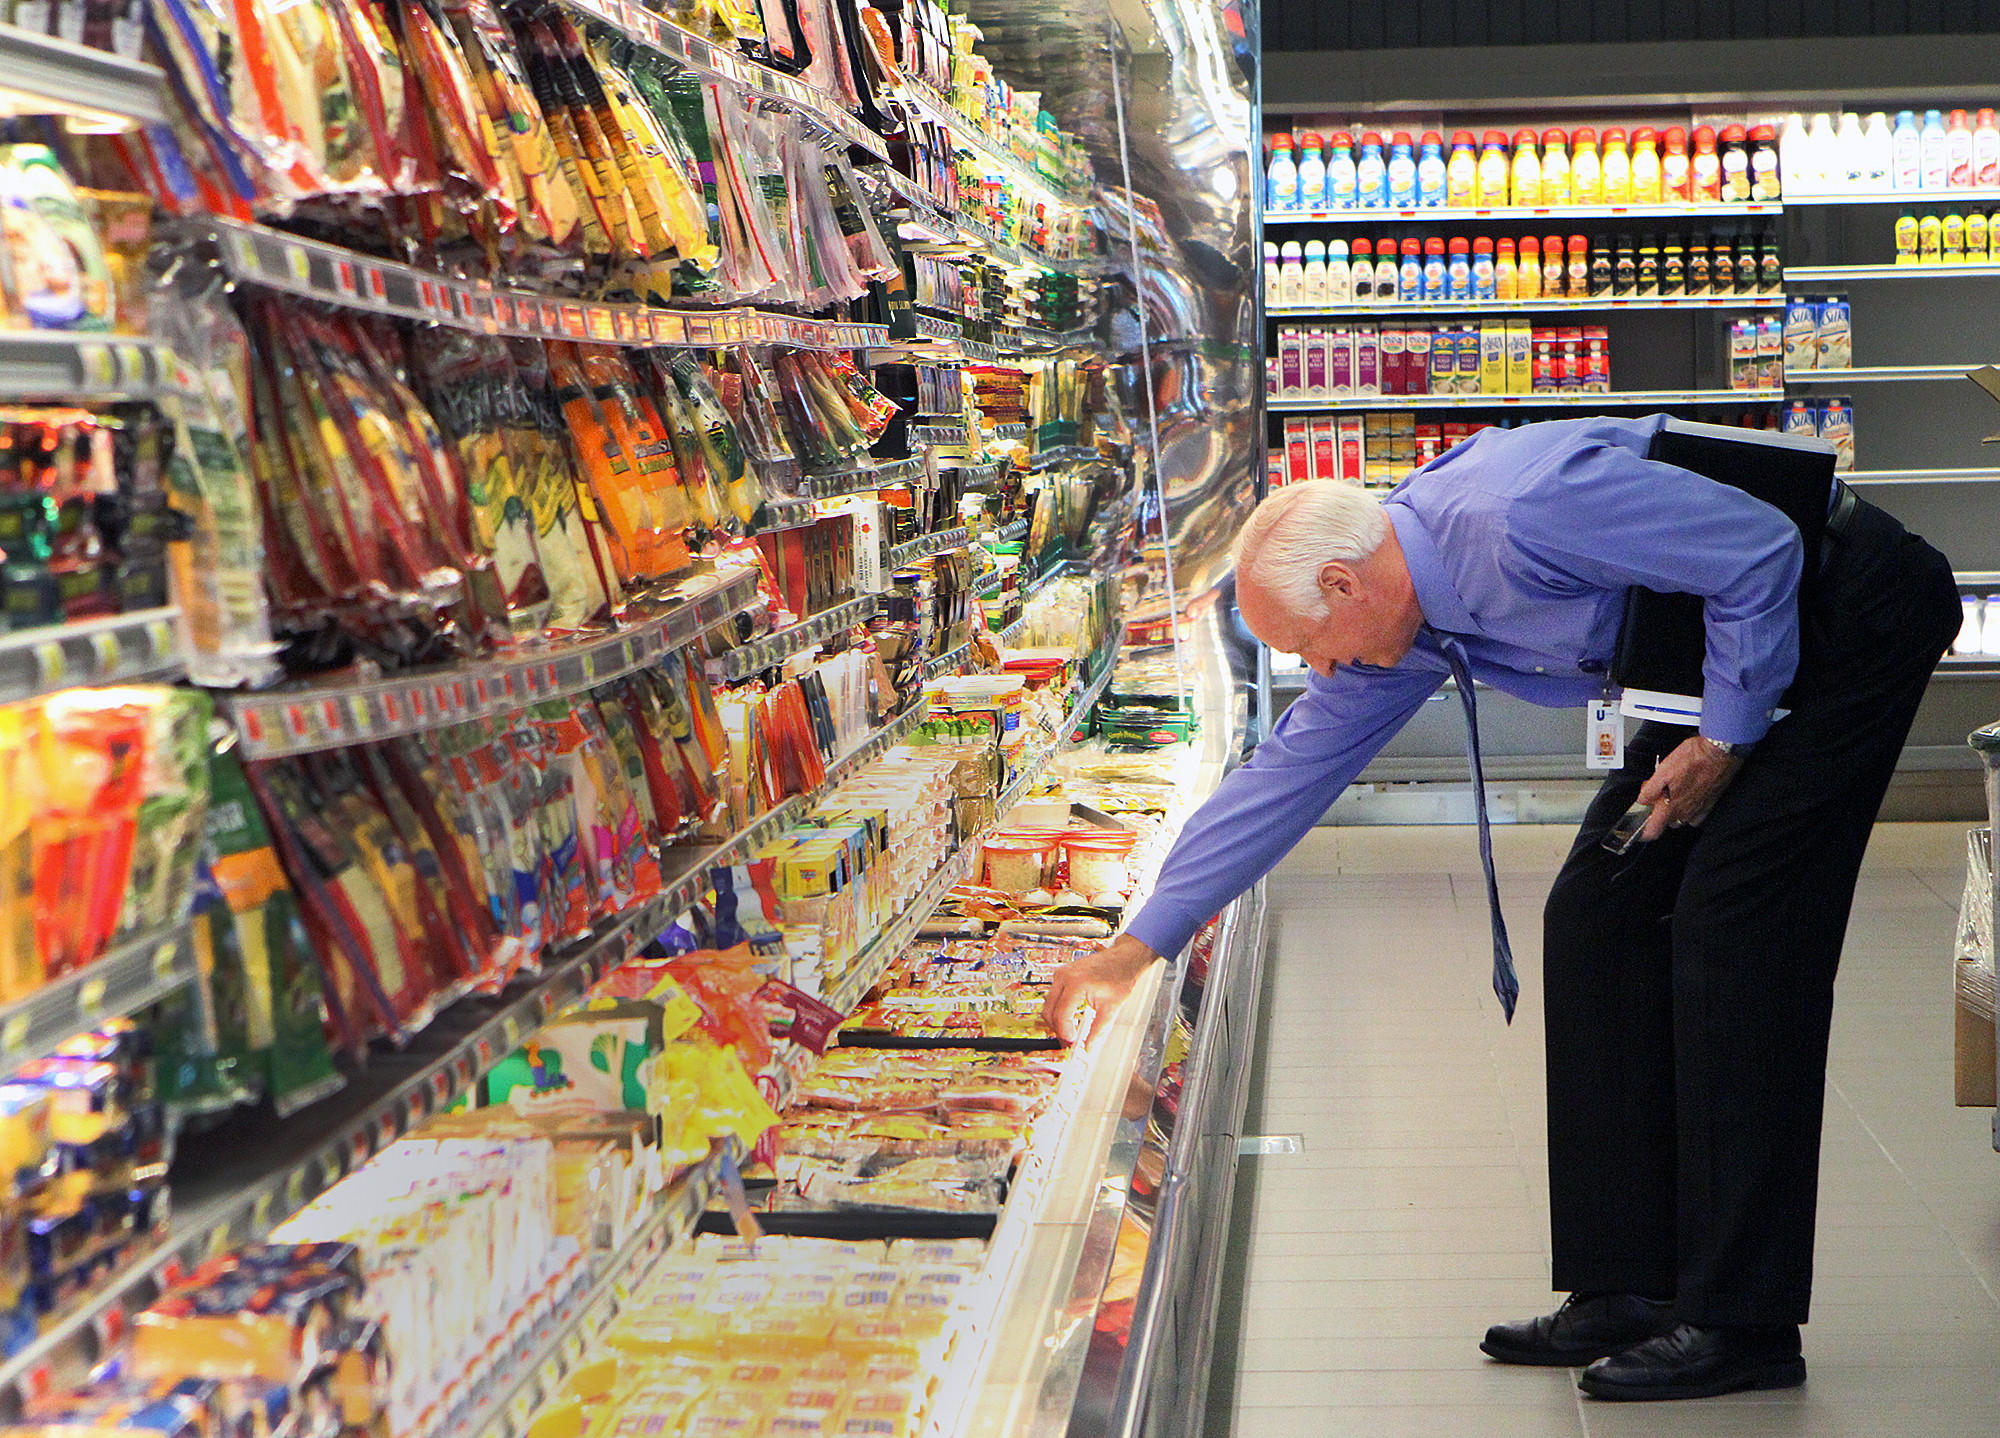 Jim Veregge, of Unified Grocers, checks shelves in a refrigerated section to make sure products his company provides are well presented and fully stocked at Gelson's in La Cañada Flintridge on Monday, March 24, 2014. The store had its grand opening on March 27 at 9:00 A.M.